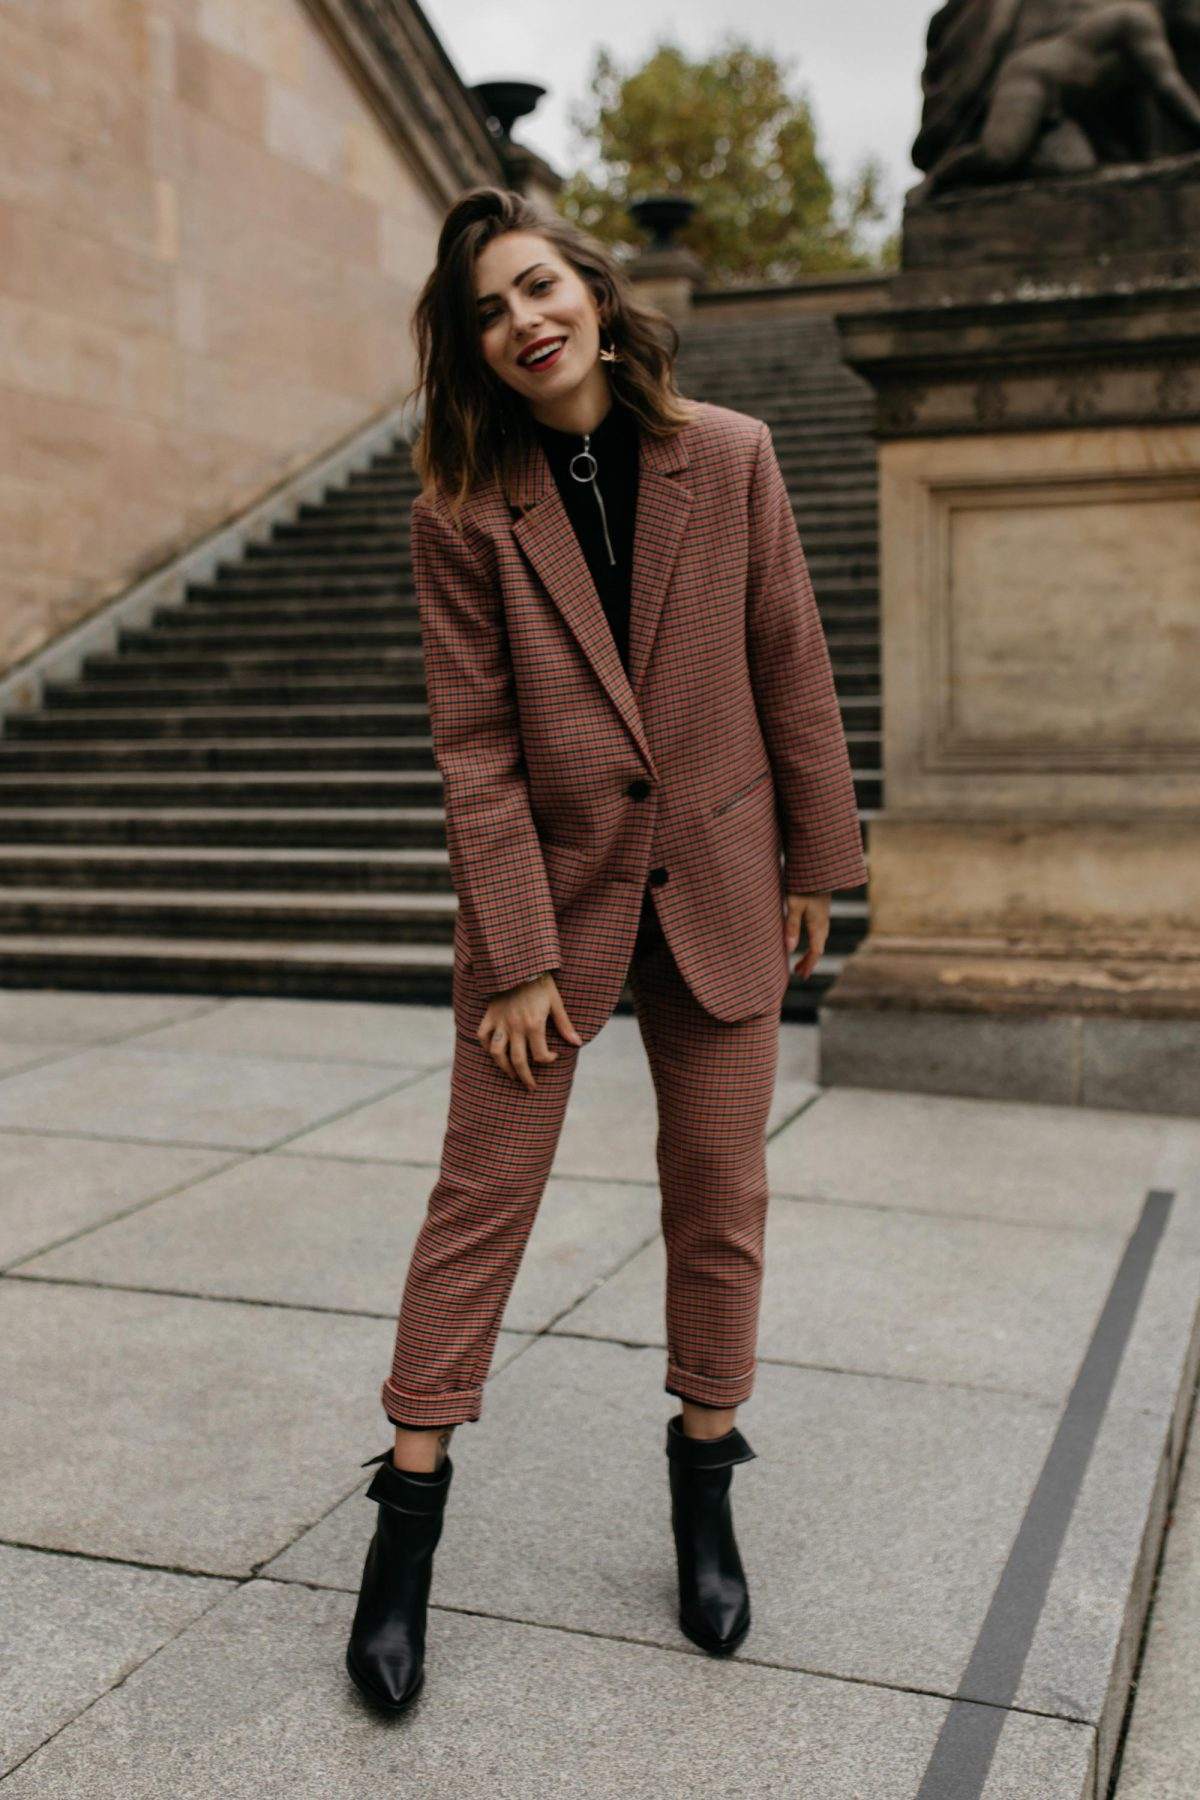 The Autumn Checked Suit